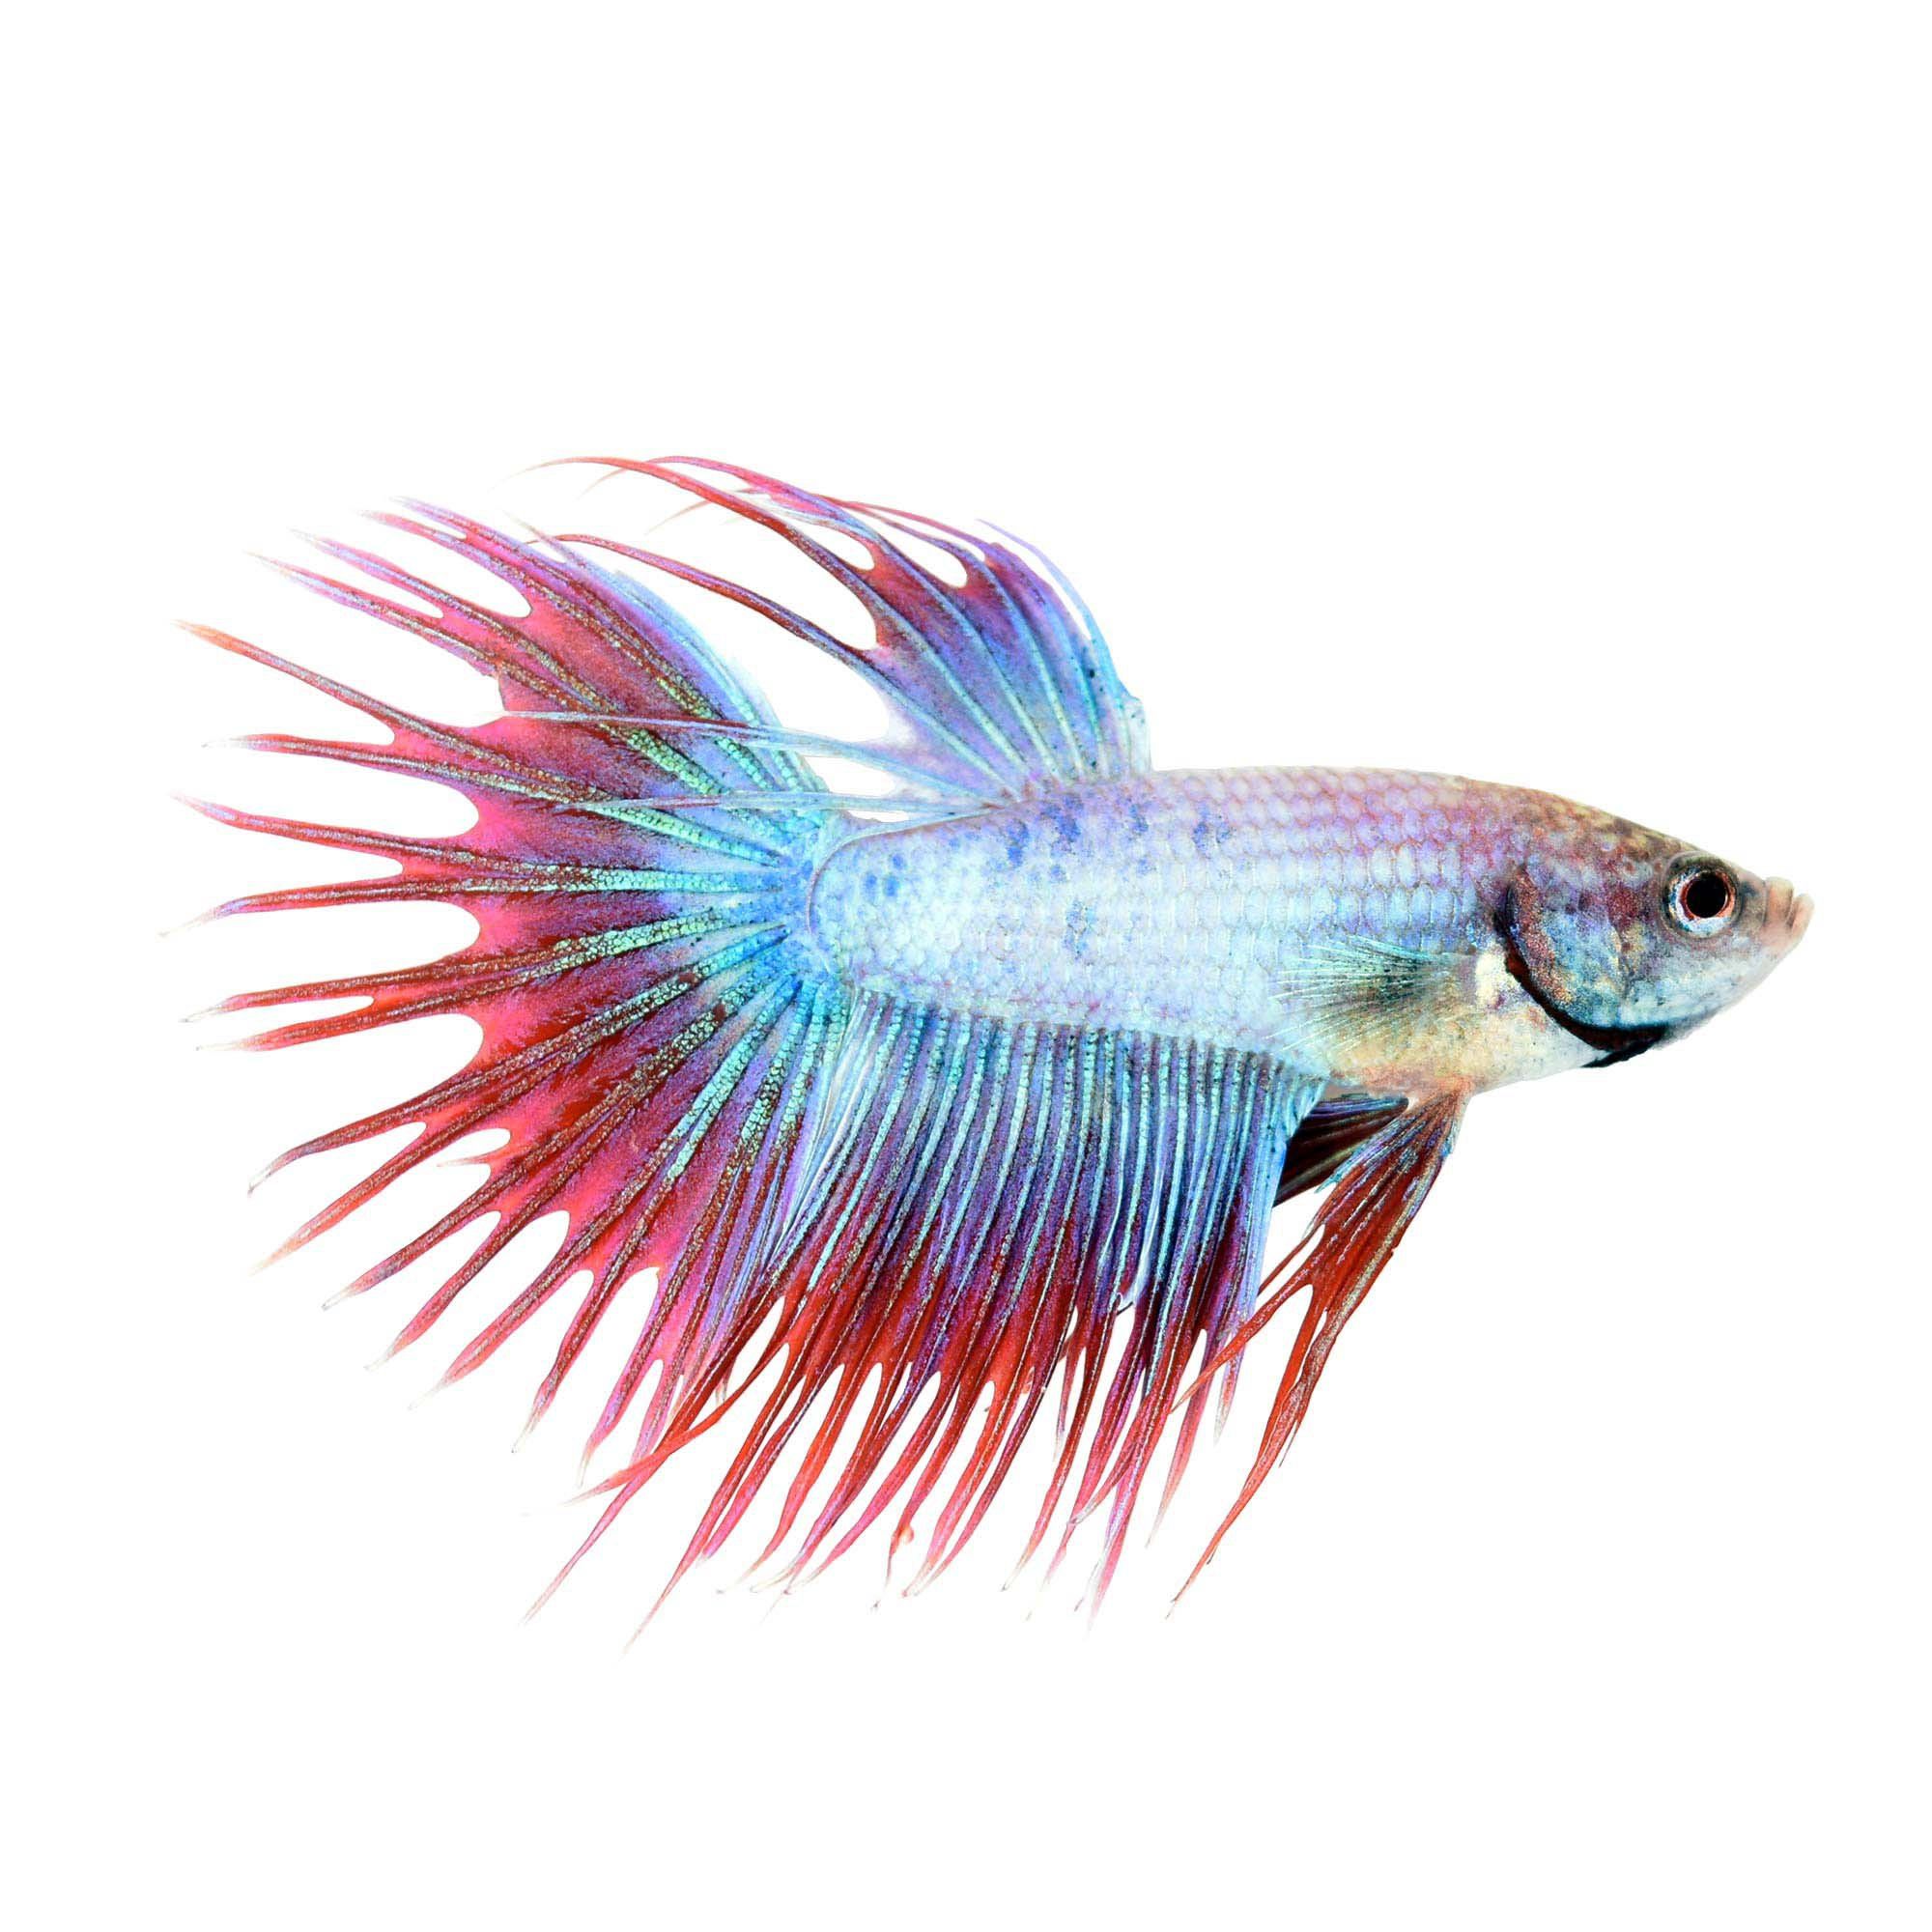 Male cambodian crowntail betta petco for Betta fish petco